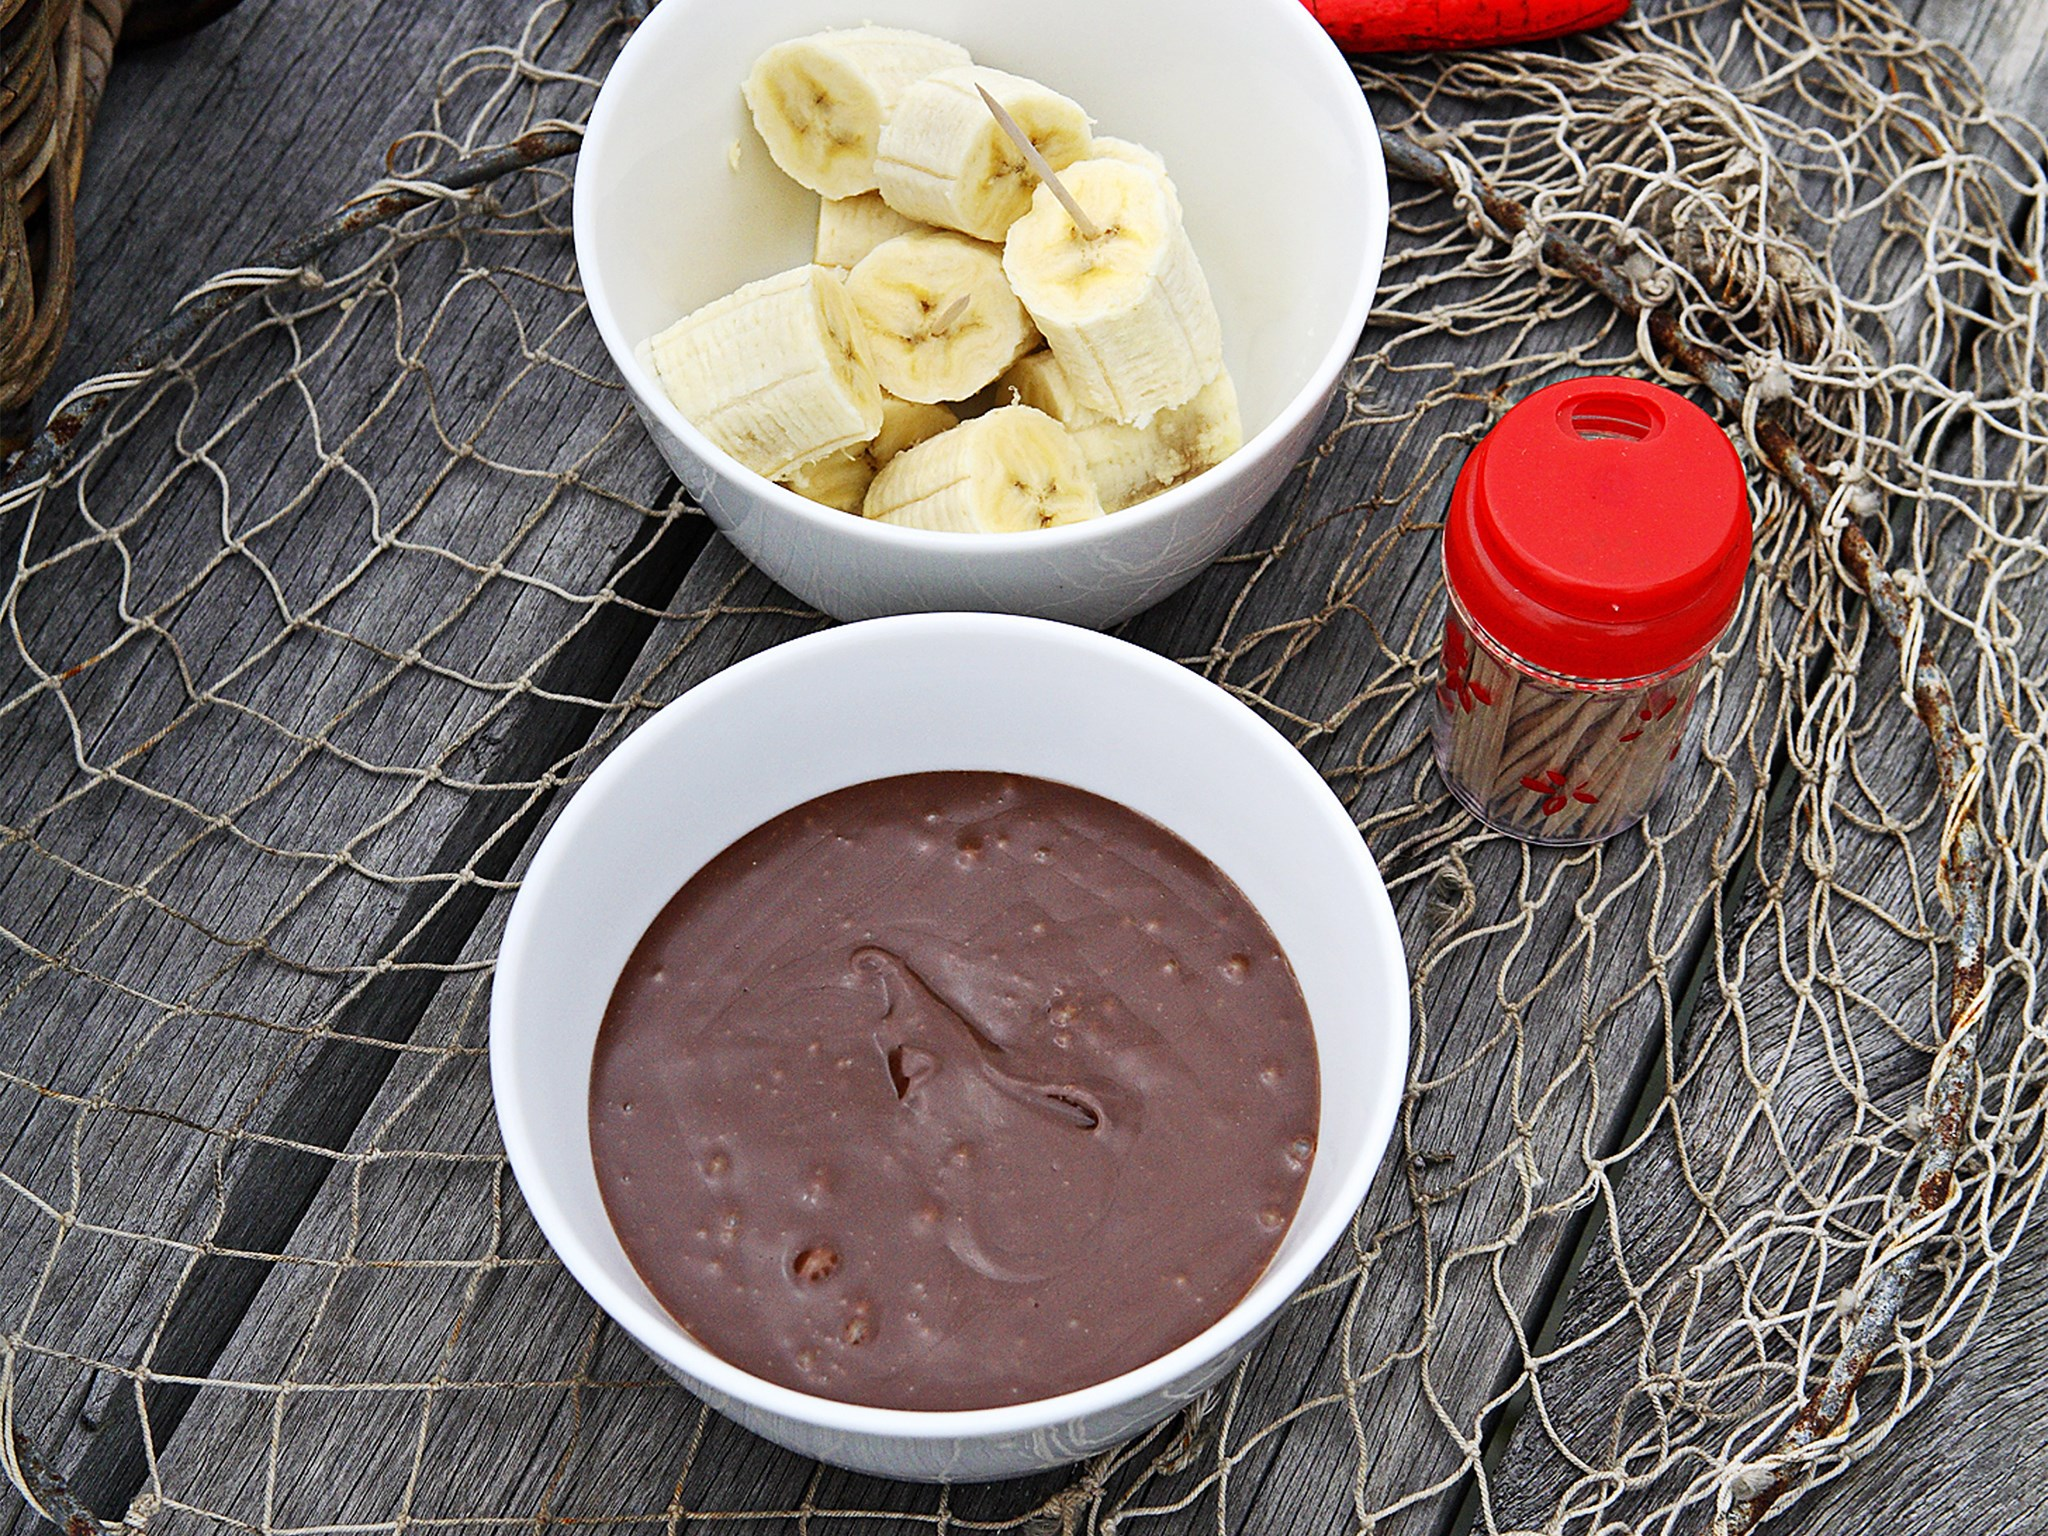 Bananas with chocolate and hazelnut sauce